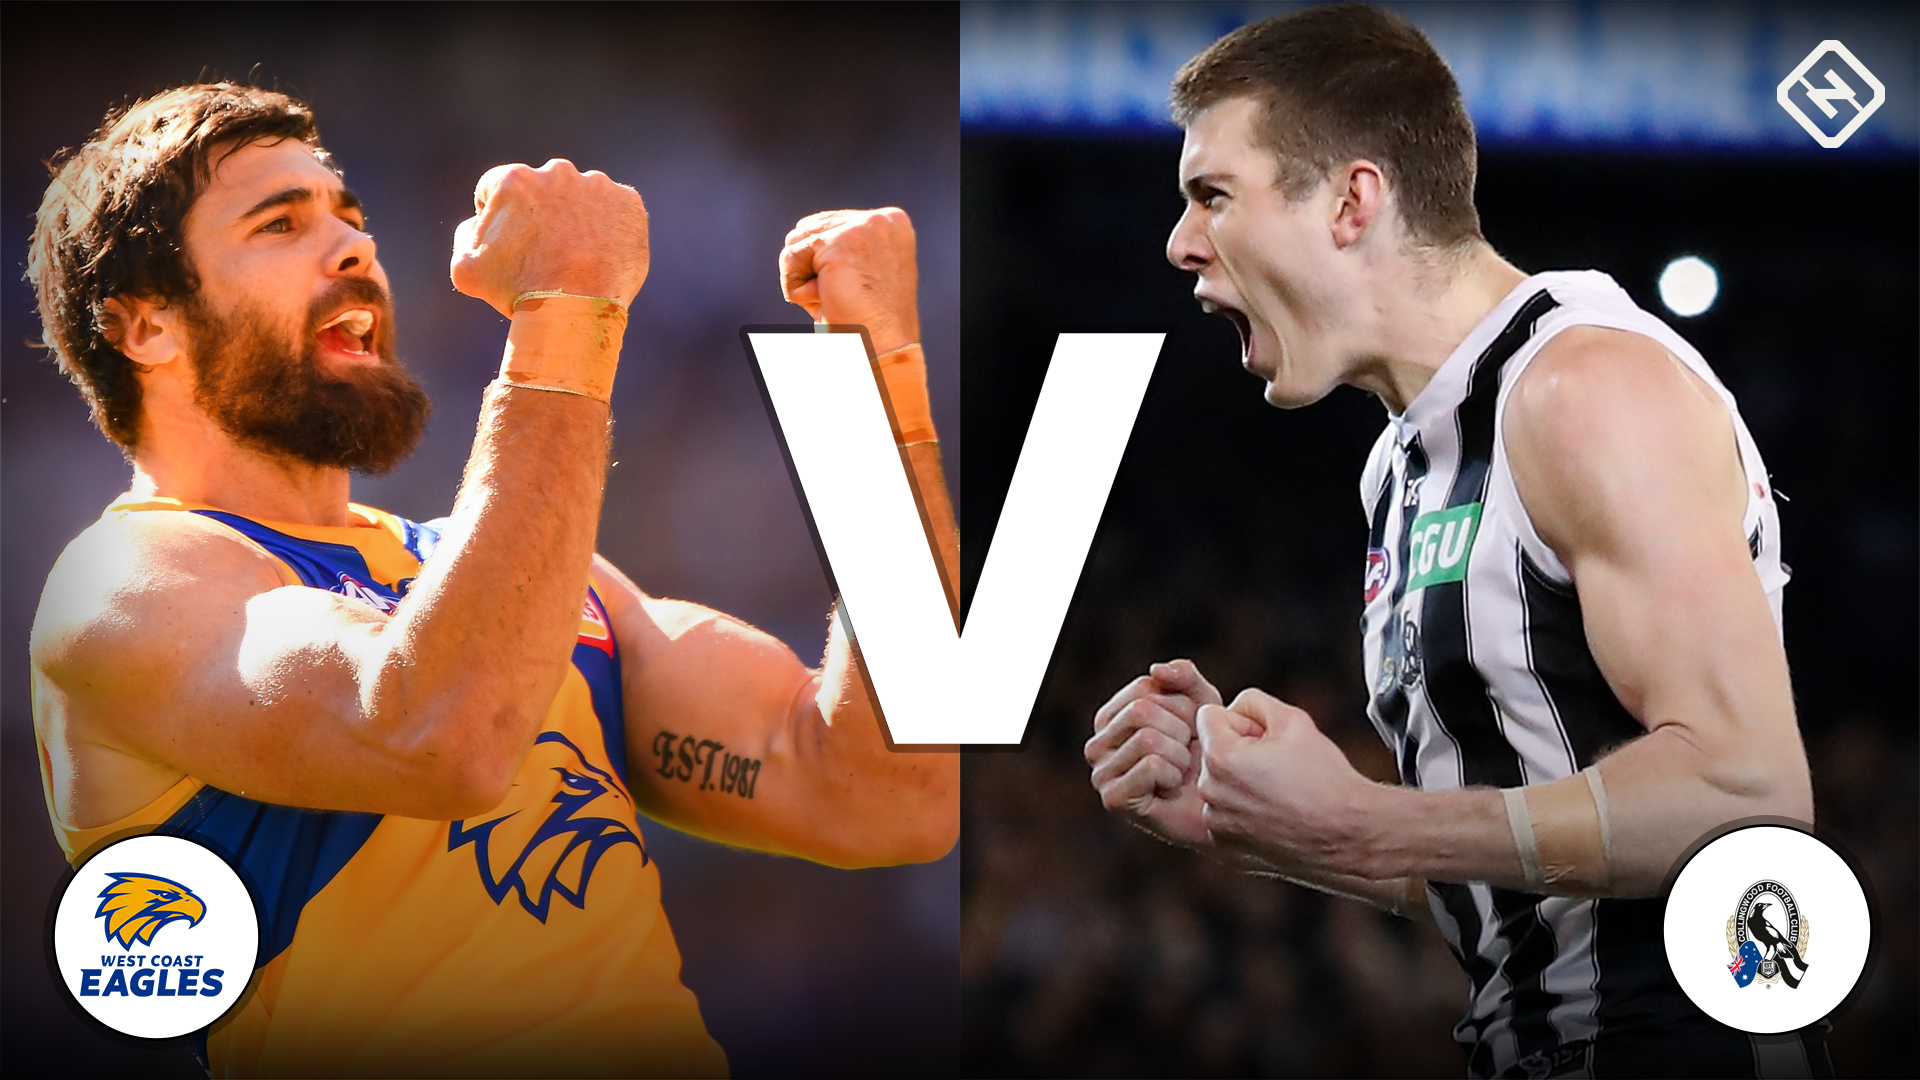 2018 AFL Grand Final: West Coast Eagles v Collingwood Magpies: Preview, teams, history and odds ...